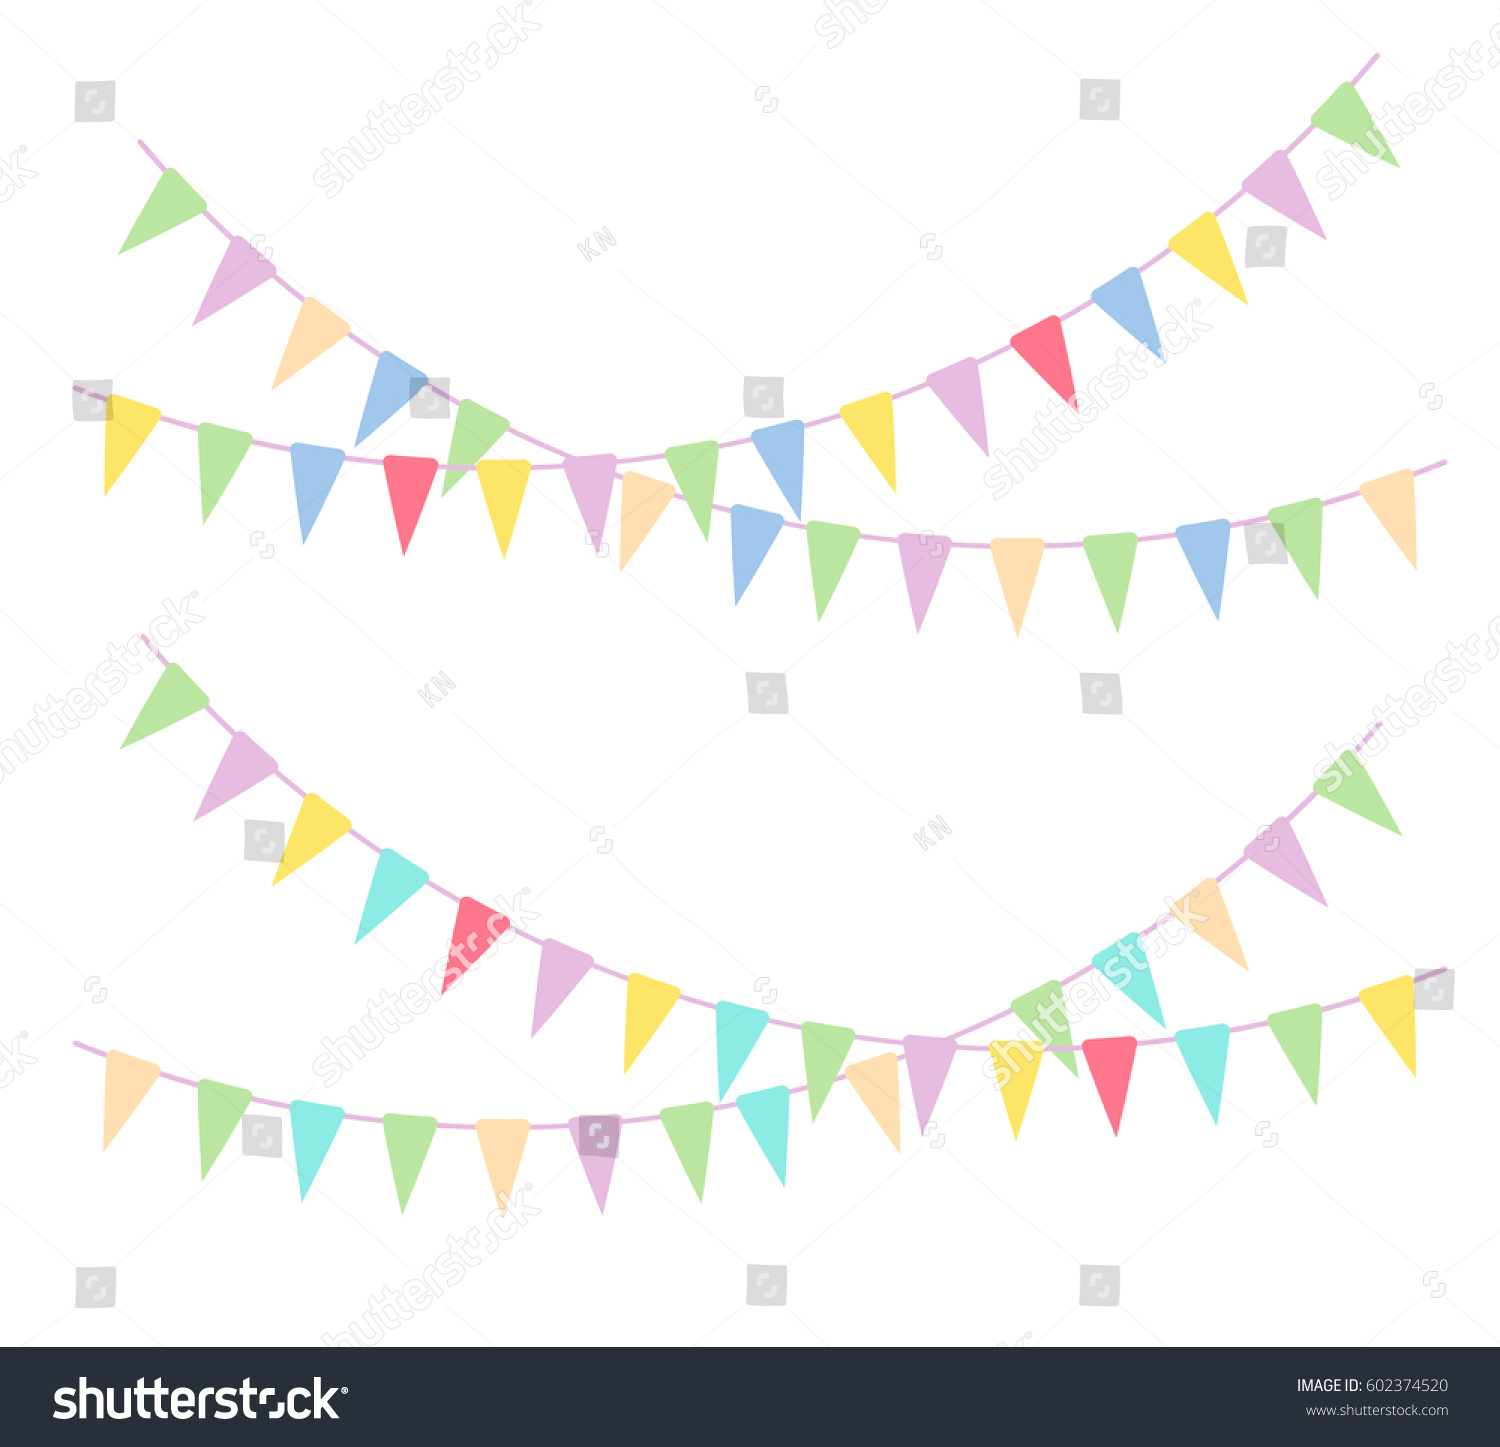 Vector bunting flags lovely celebration card with colorful paper - Birthday Party Vector Illustration Of Kid Birthday Party Festive Banner As Bunting Flags